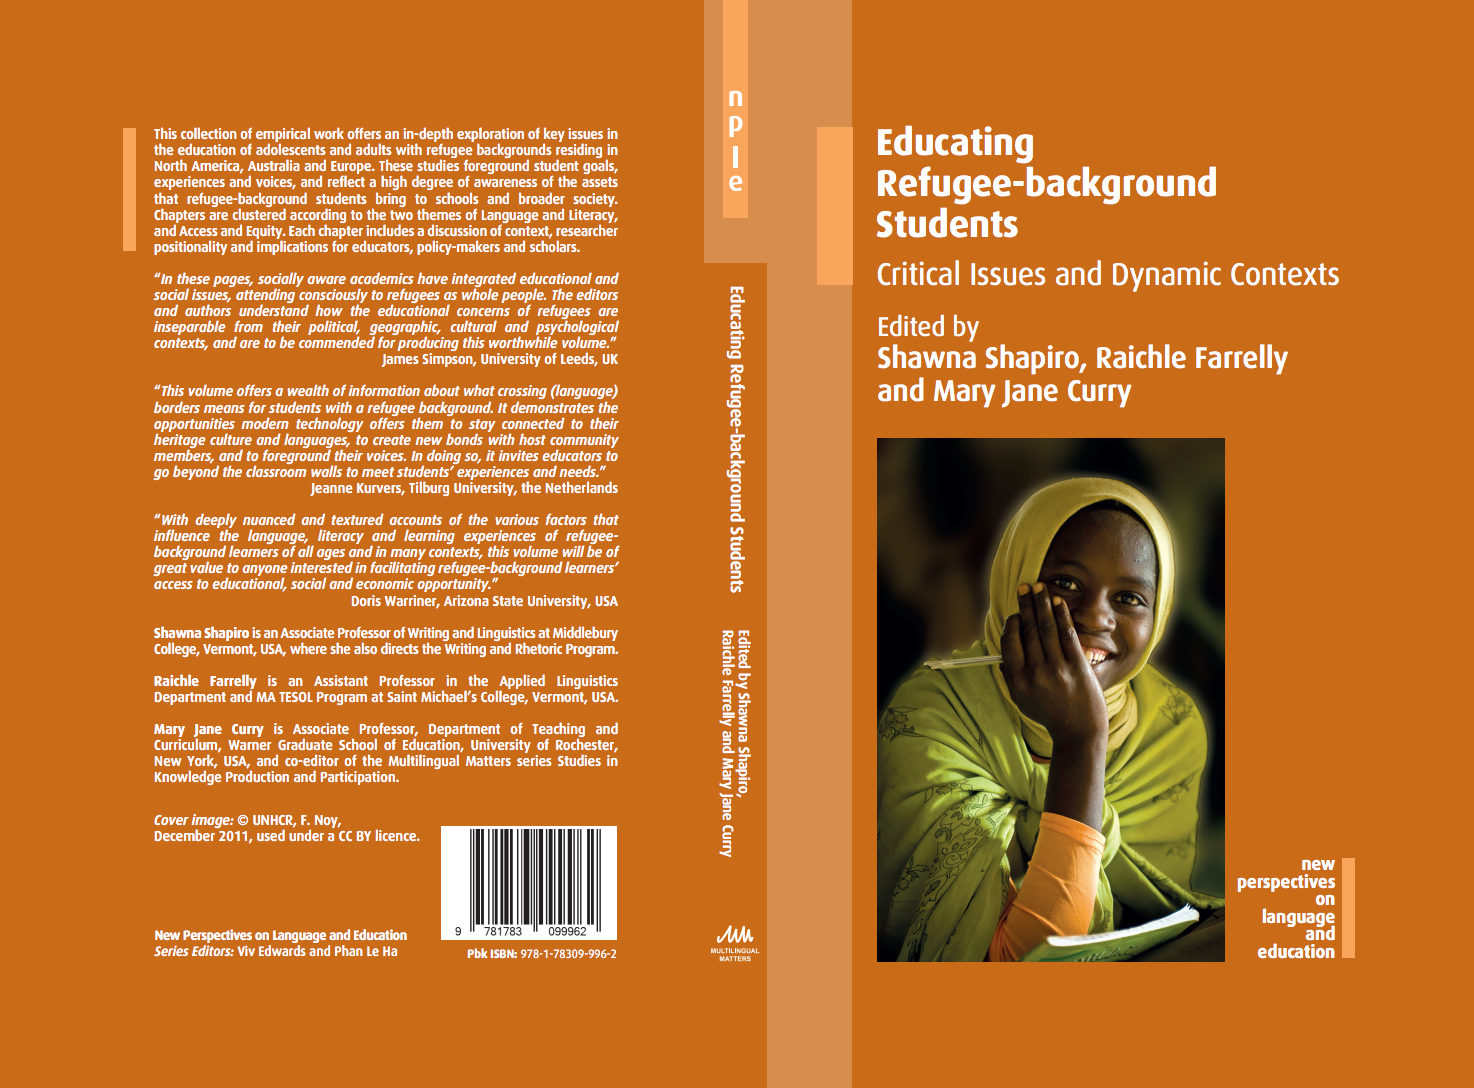 Educating Refugee-background Students_Cover.png